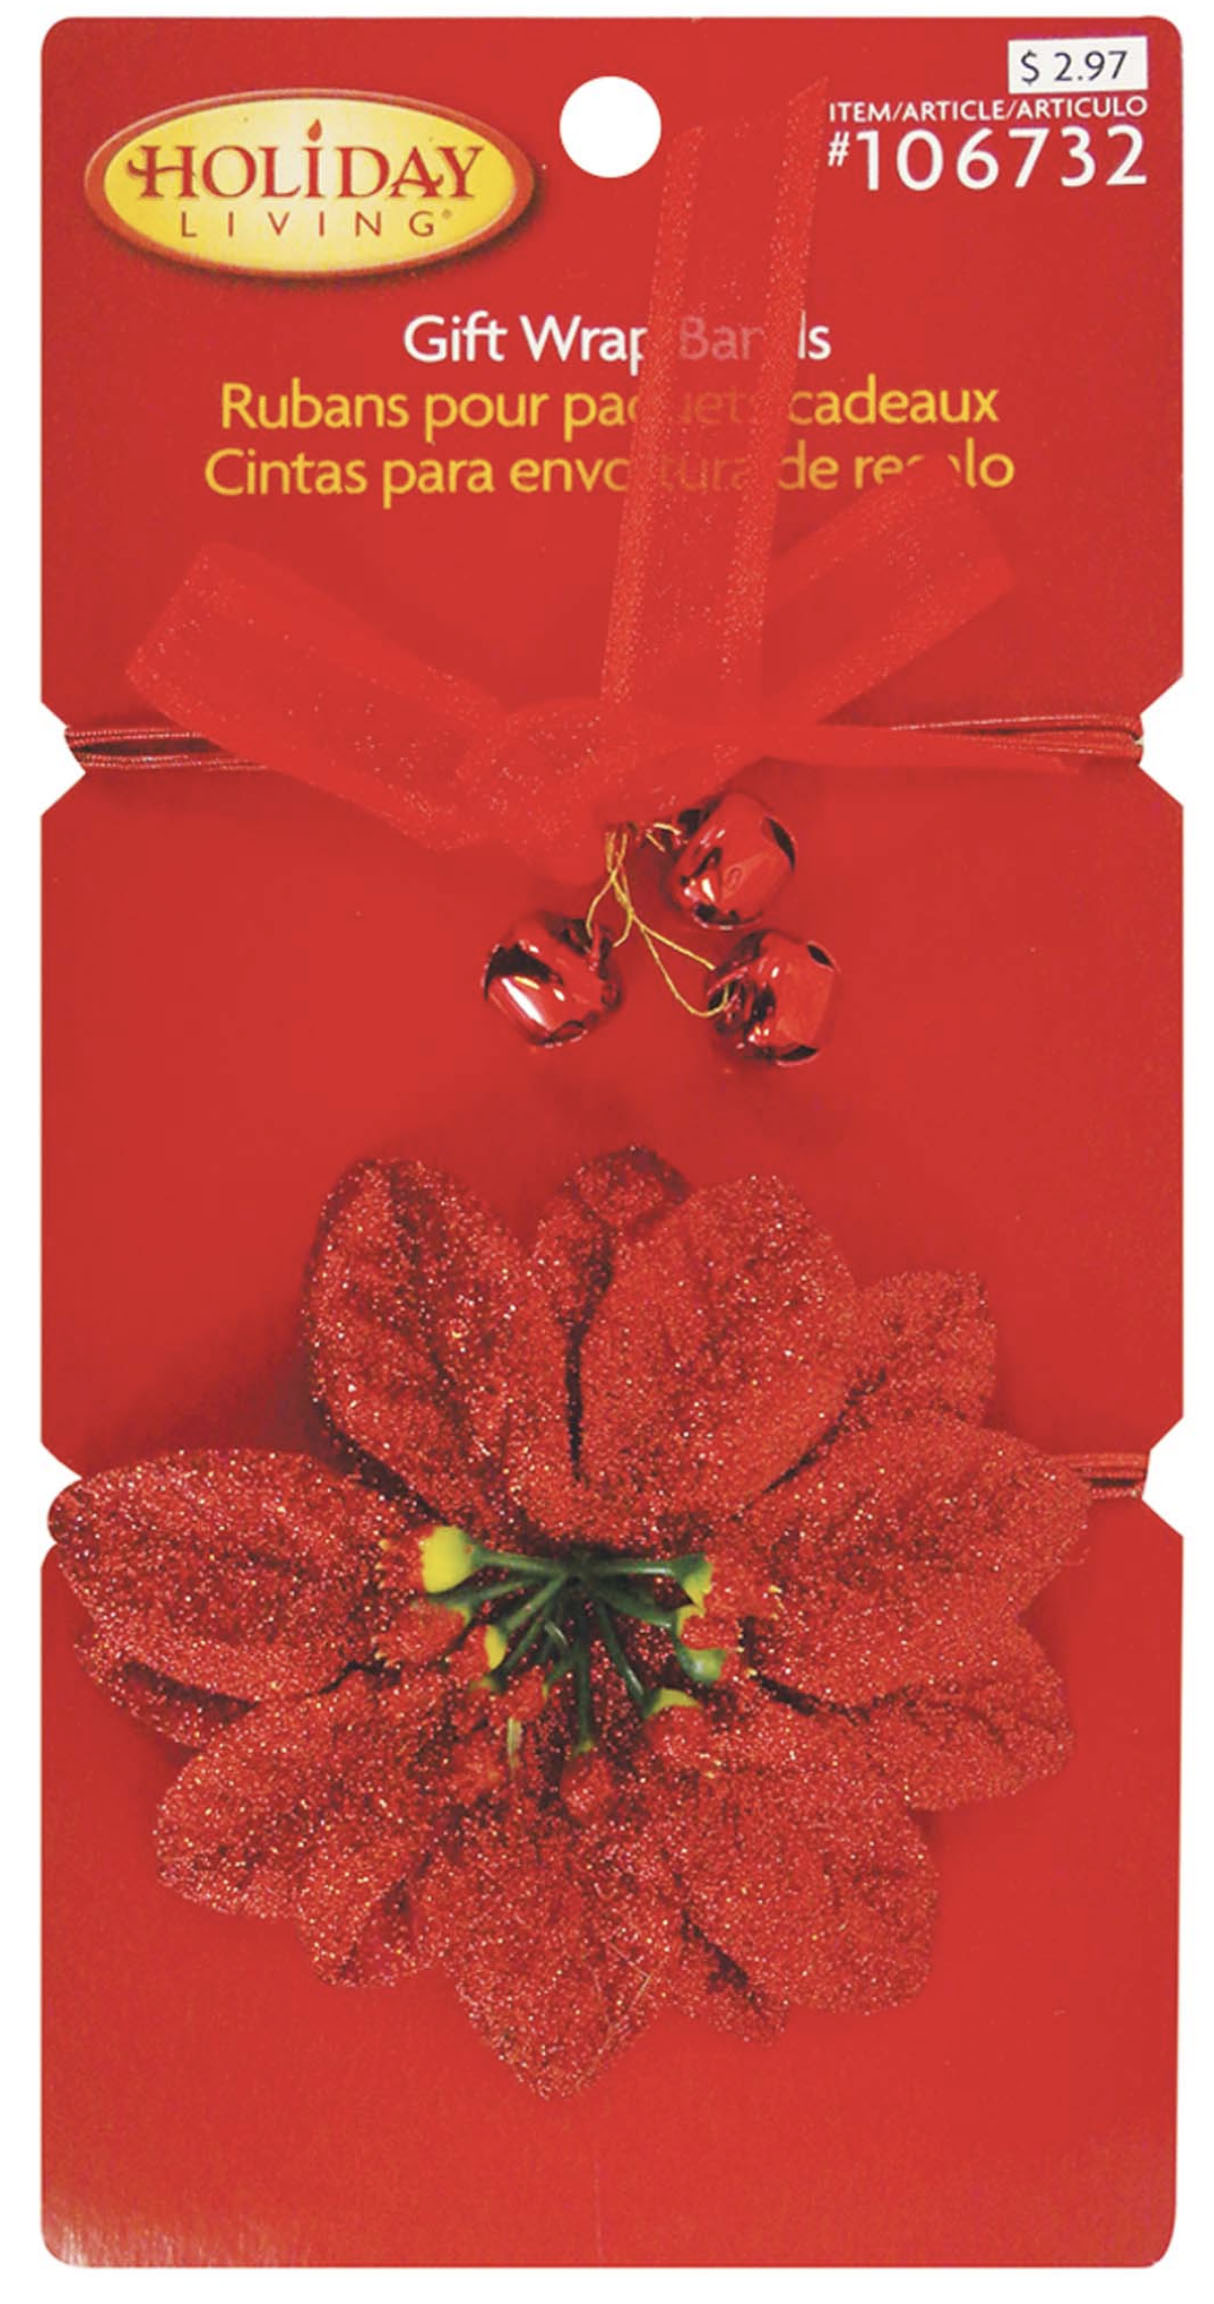 View CHRISTMAS GIFT WRAP BANDS 2 PACK PREPRICED $ 2.97 IN DISPLAY